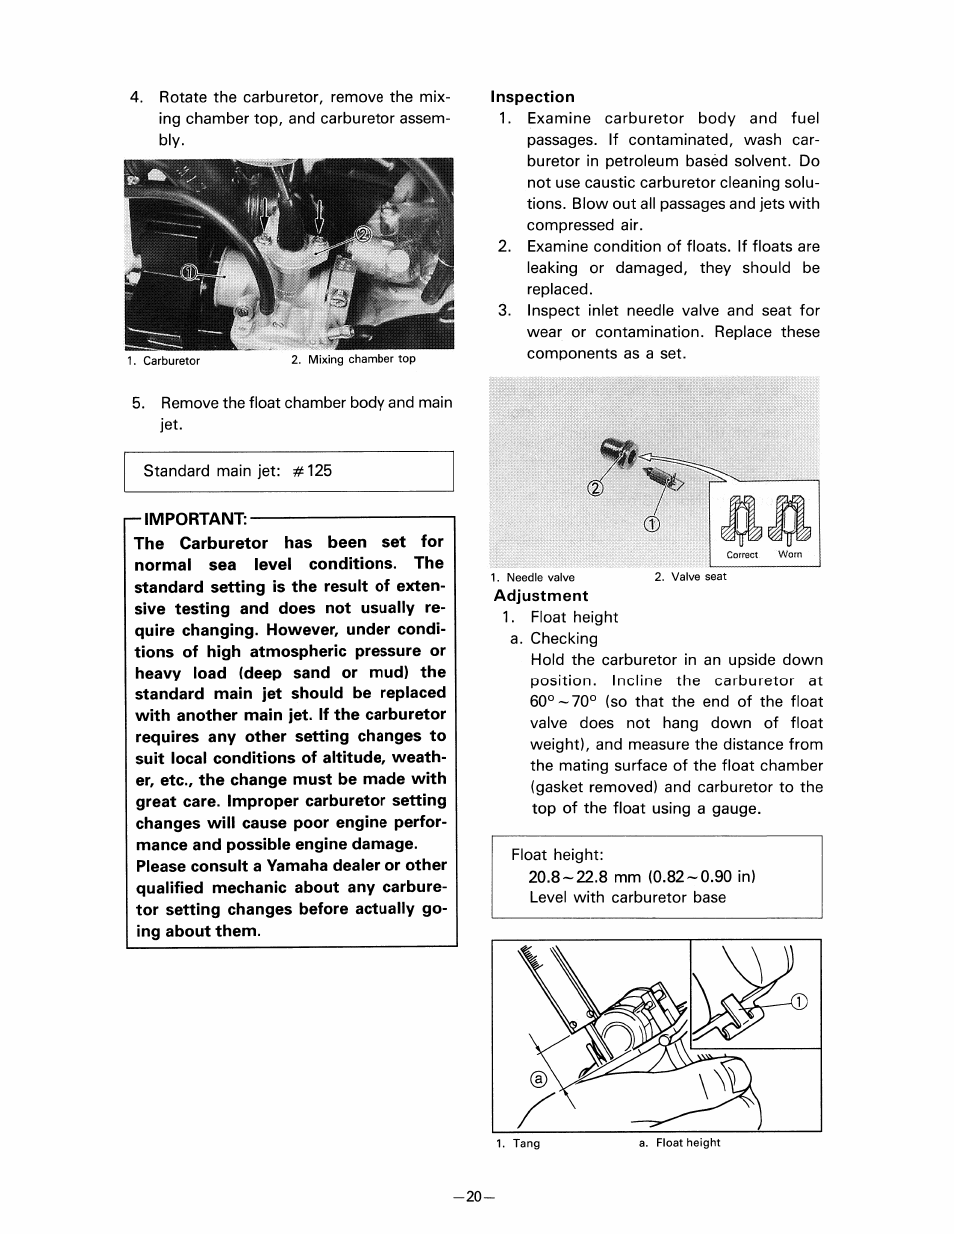 Inspection, Adjustment | Yamaha pw80 User Manual | Page 32 / 64